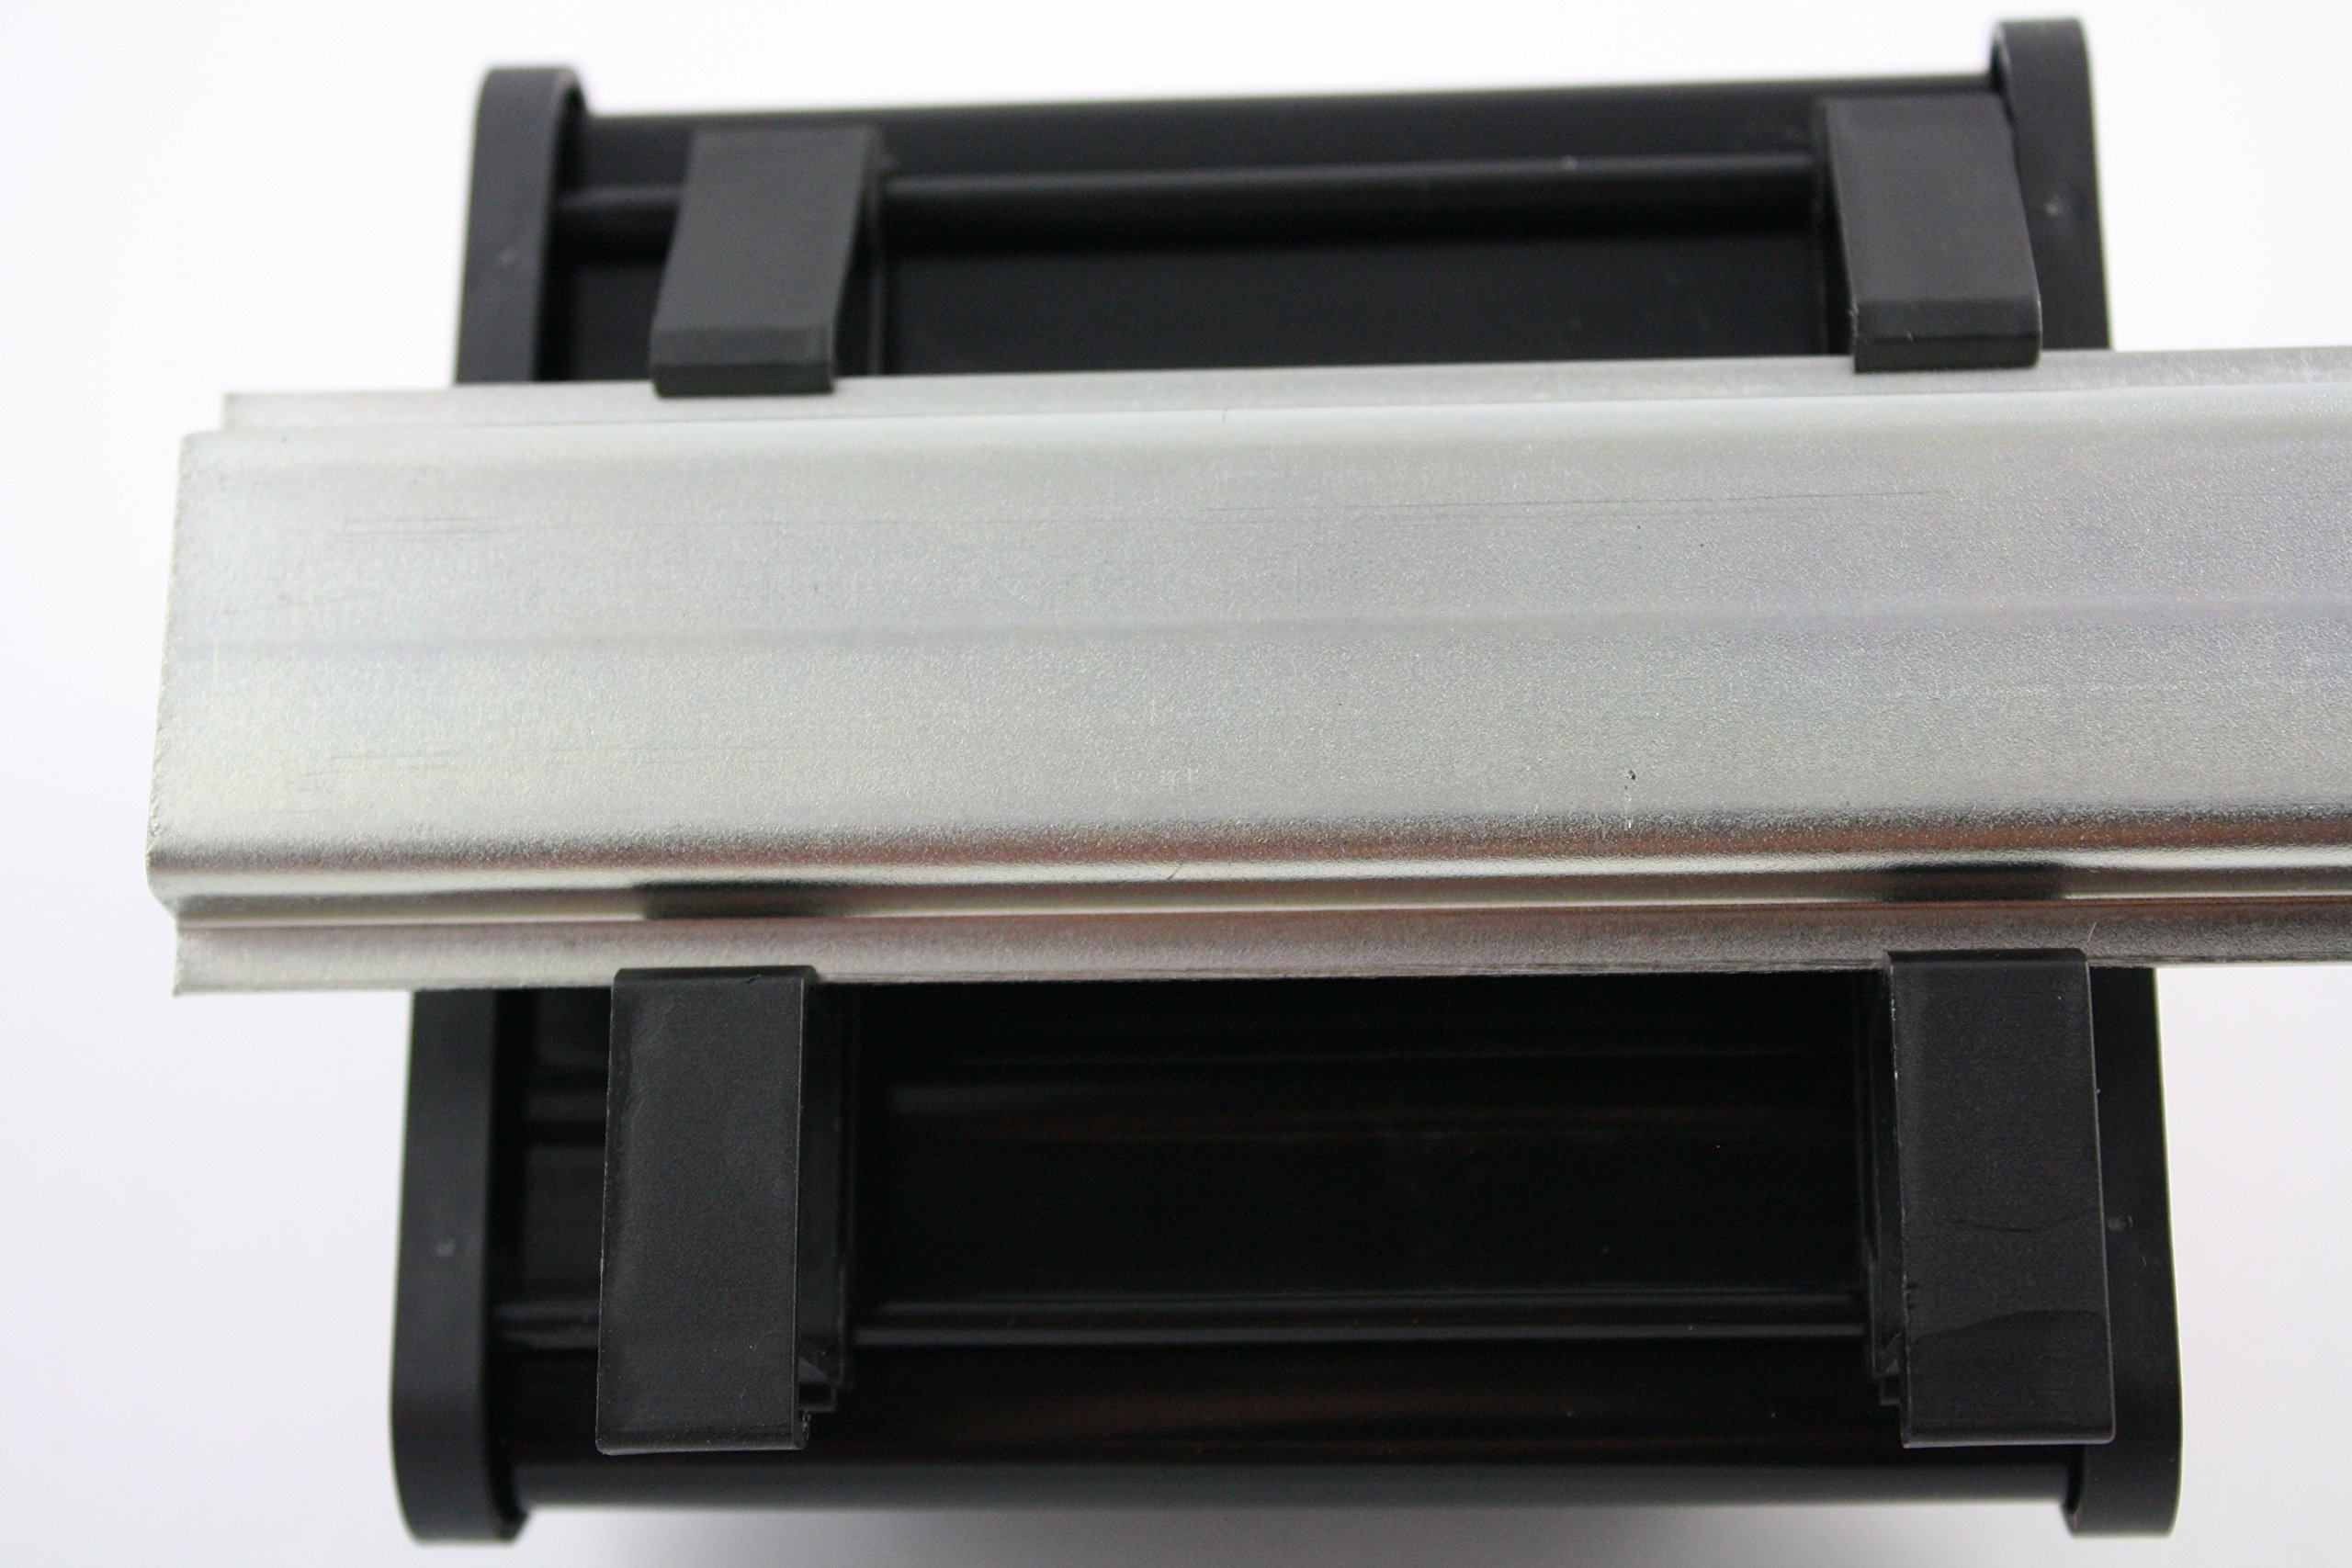 ASI 10005 26 to 12 AWG IMRC34 DIN Rail Mount Interface Module, Flat Ribbon Cable to Wire Transition, 34 Position Ribbon Cable to Terminal Blocks, 3.79'' Length